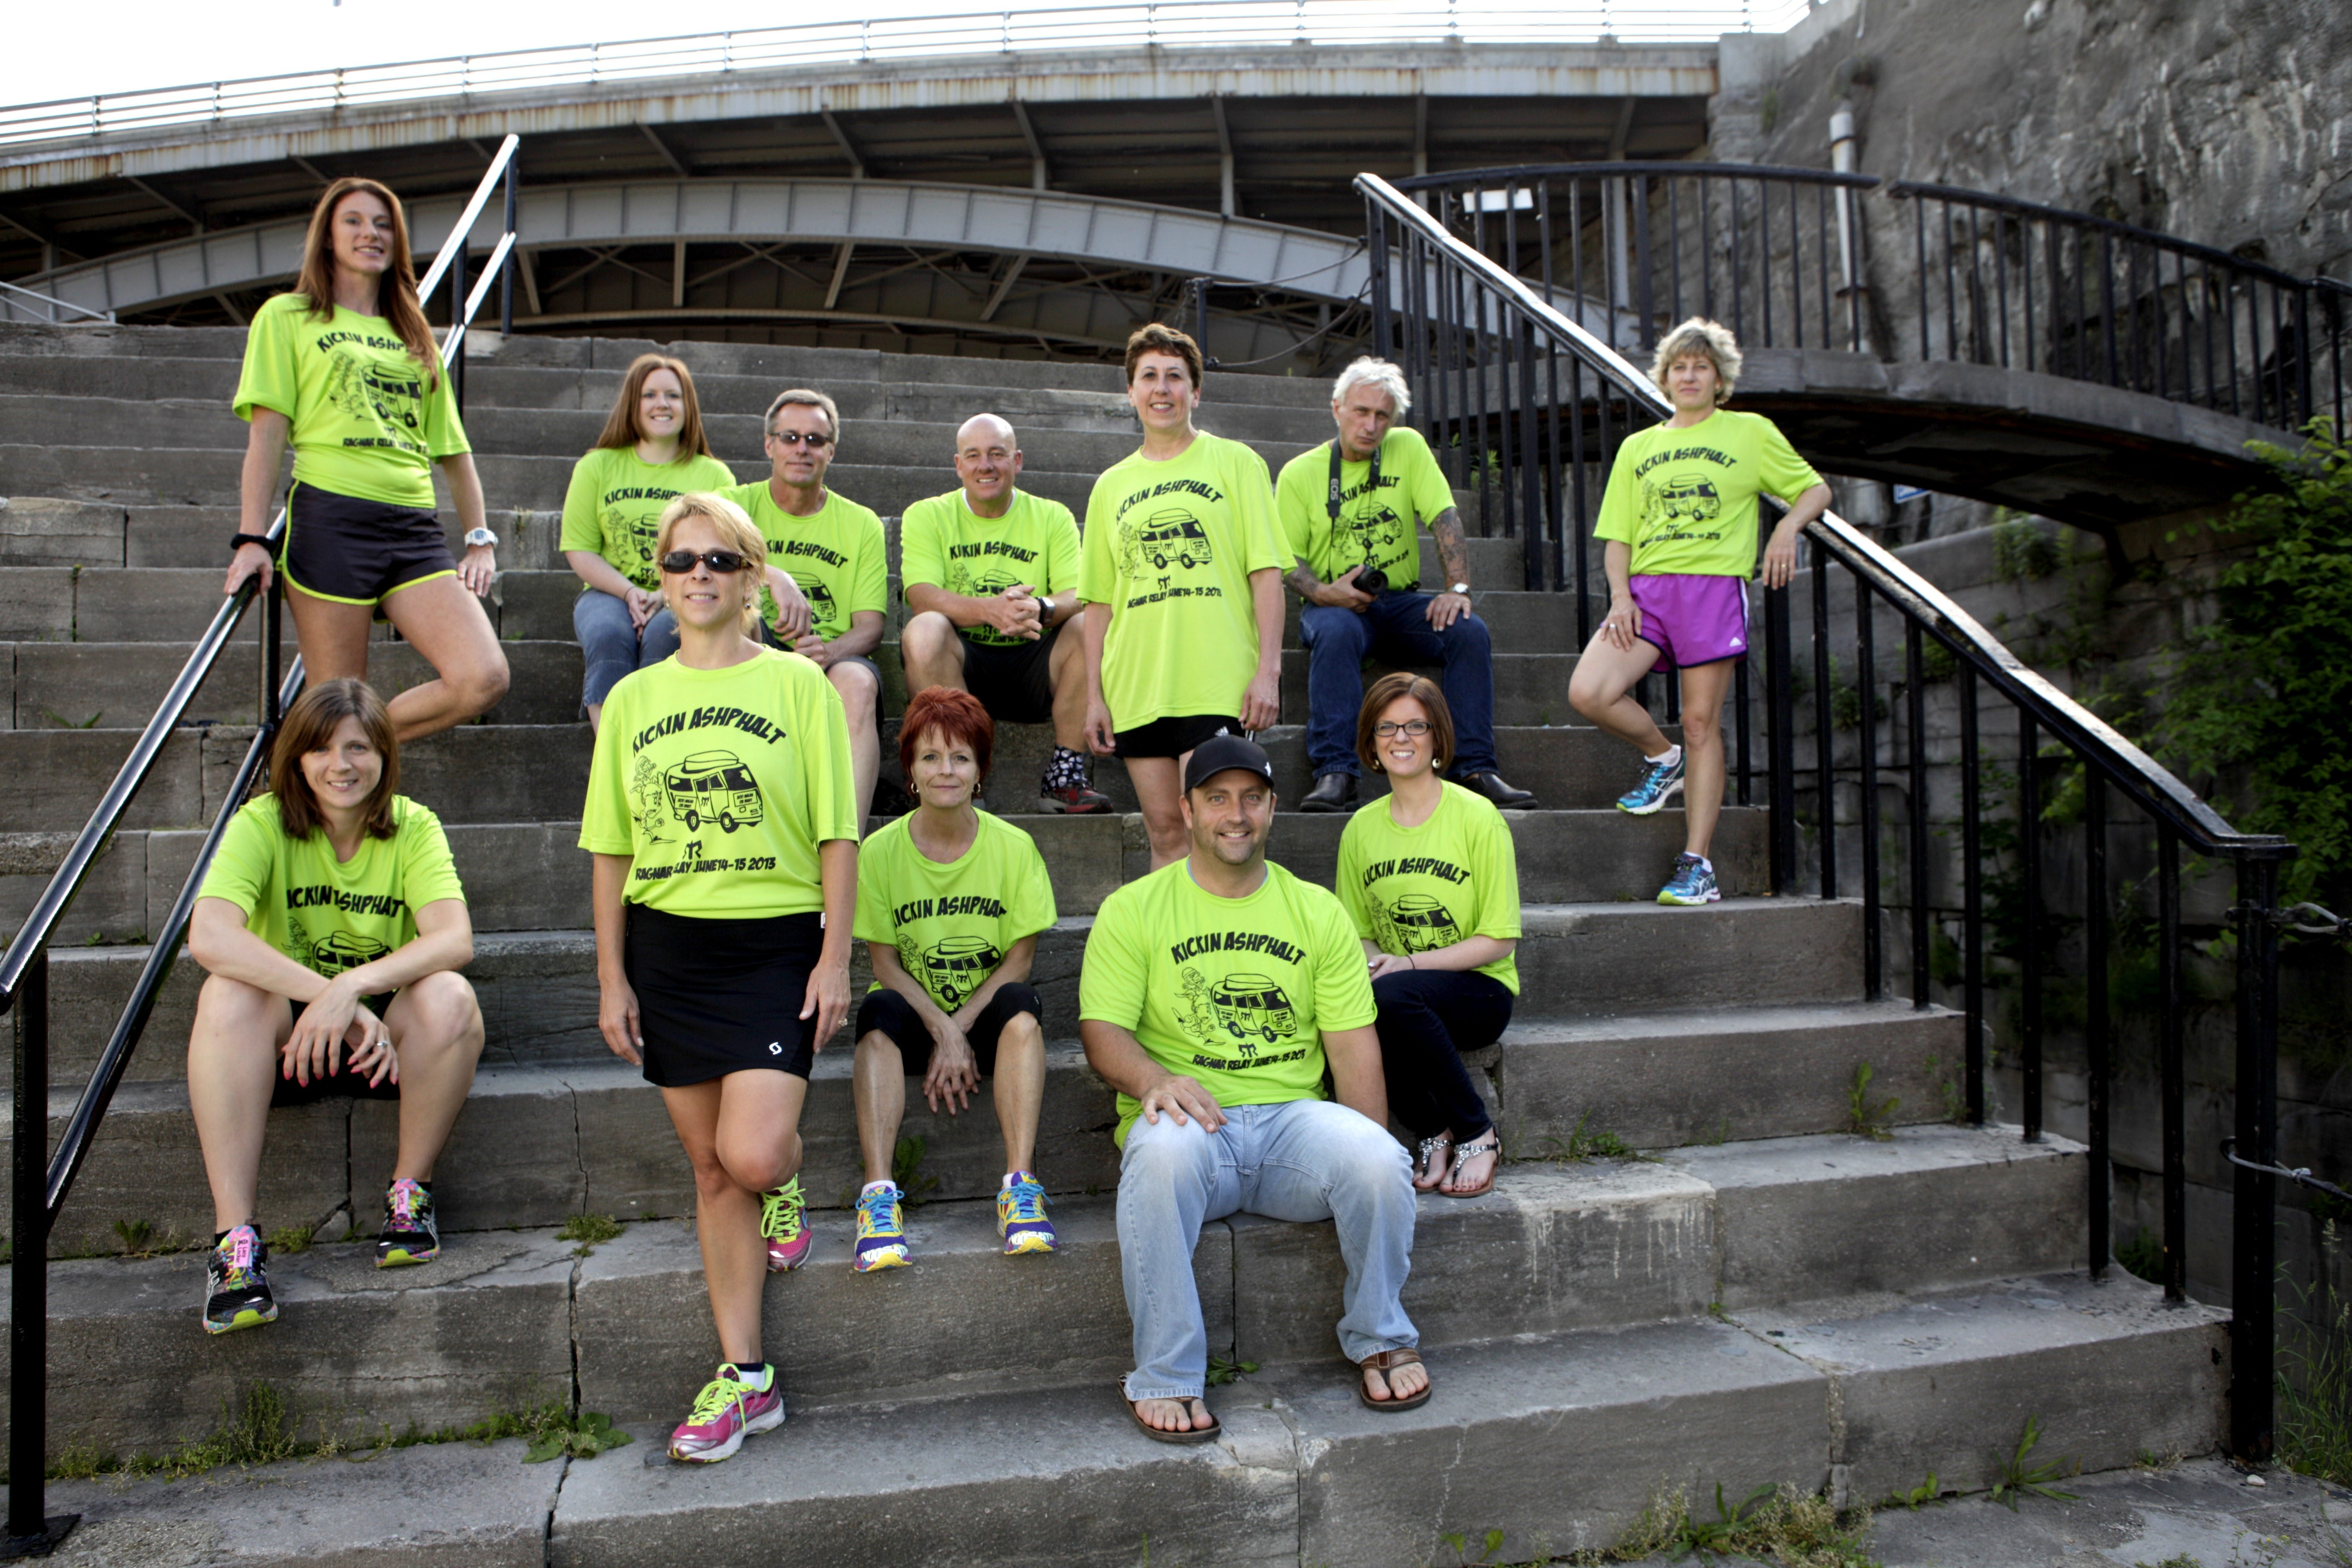 Denise Salmons, standing in front, and some of her teammates for the 193-mile Niagara Ontario Ragnar Relay, which began Friday.